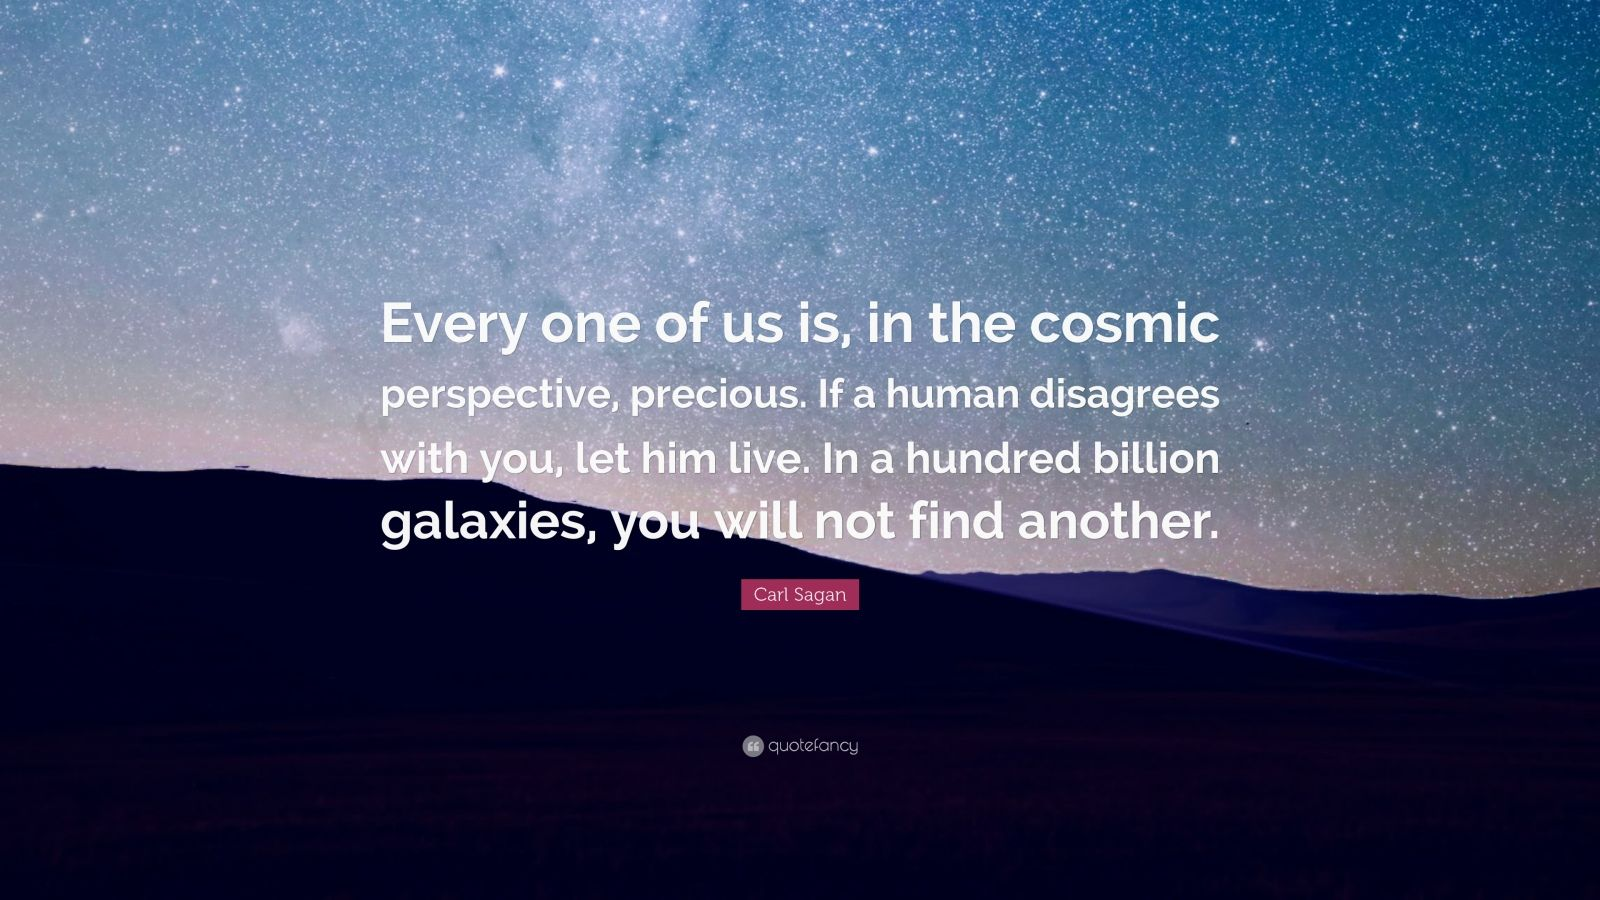 Douglas Adams Quotes Wallpaper Carl Sagan Quote Every One Of Us Is In The Cosmic